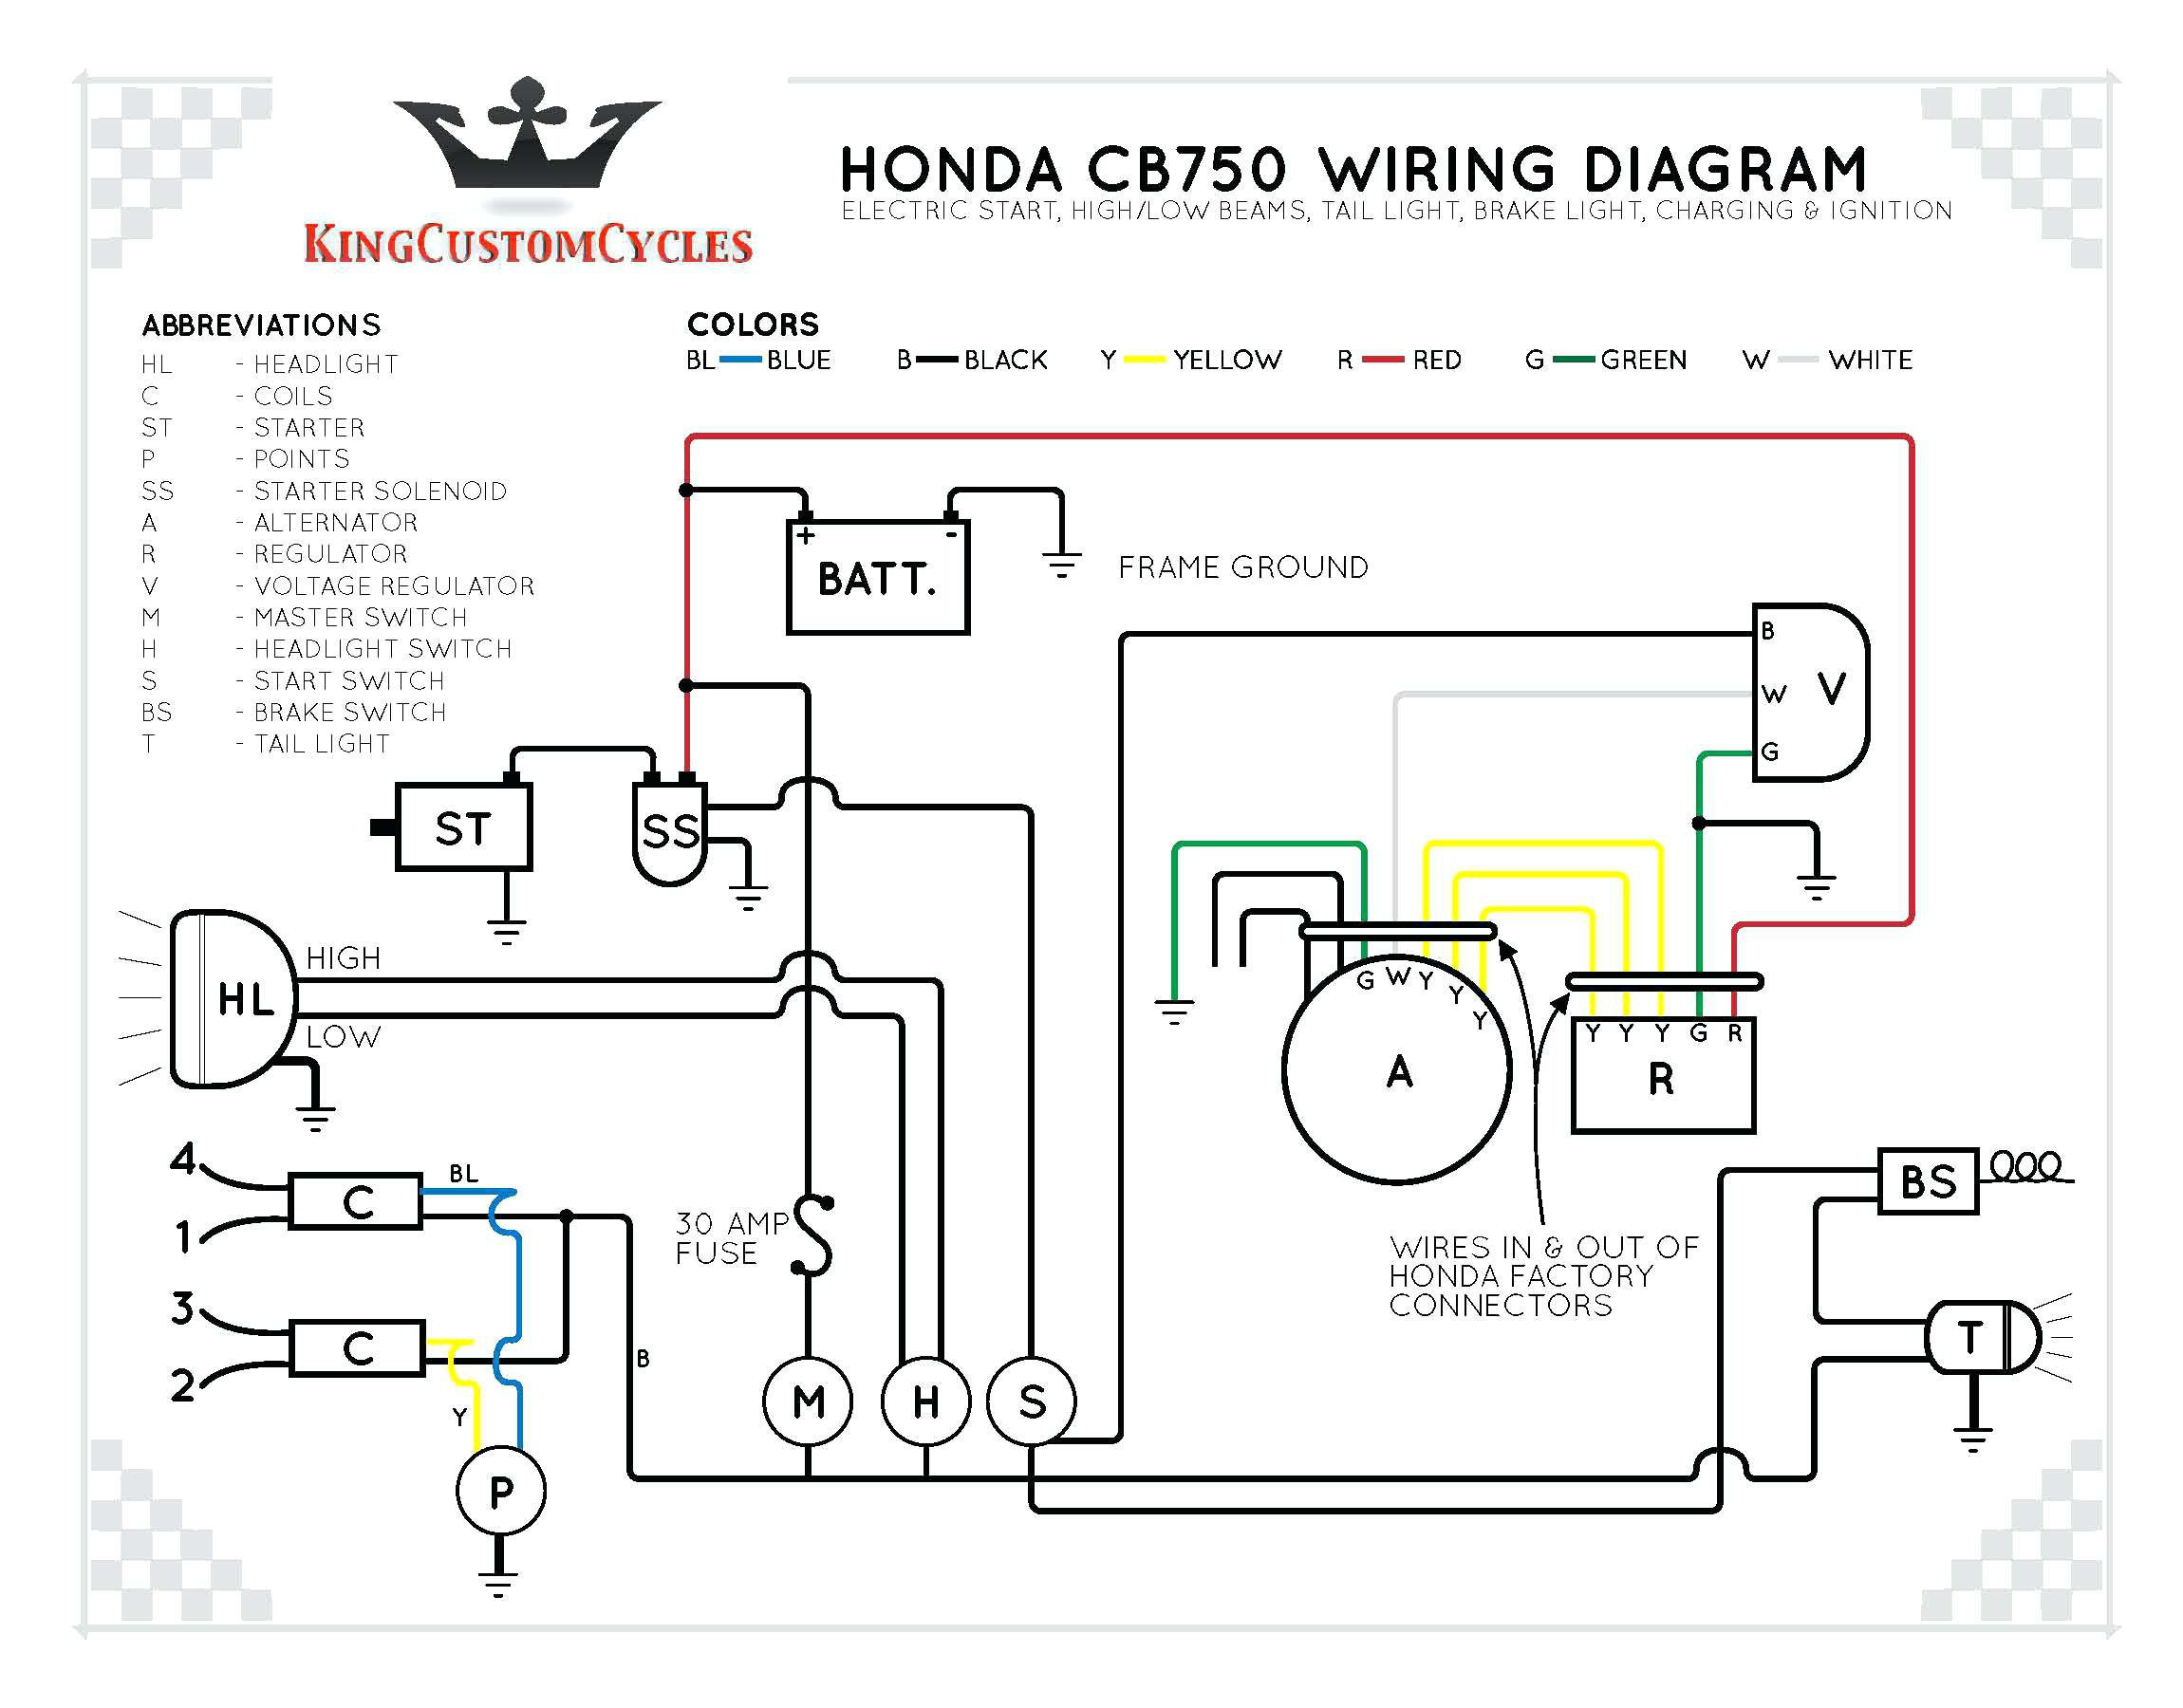 Traveller Winch Wiring Diagram Awesome Traveller Winch Wiring - Traveller Winch Wiring Diagram